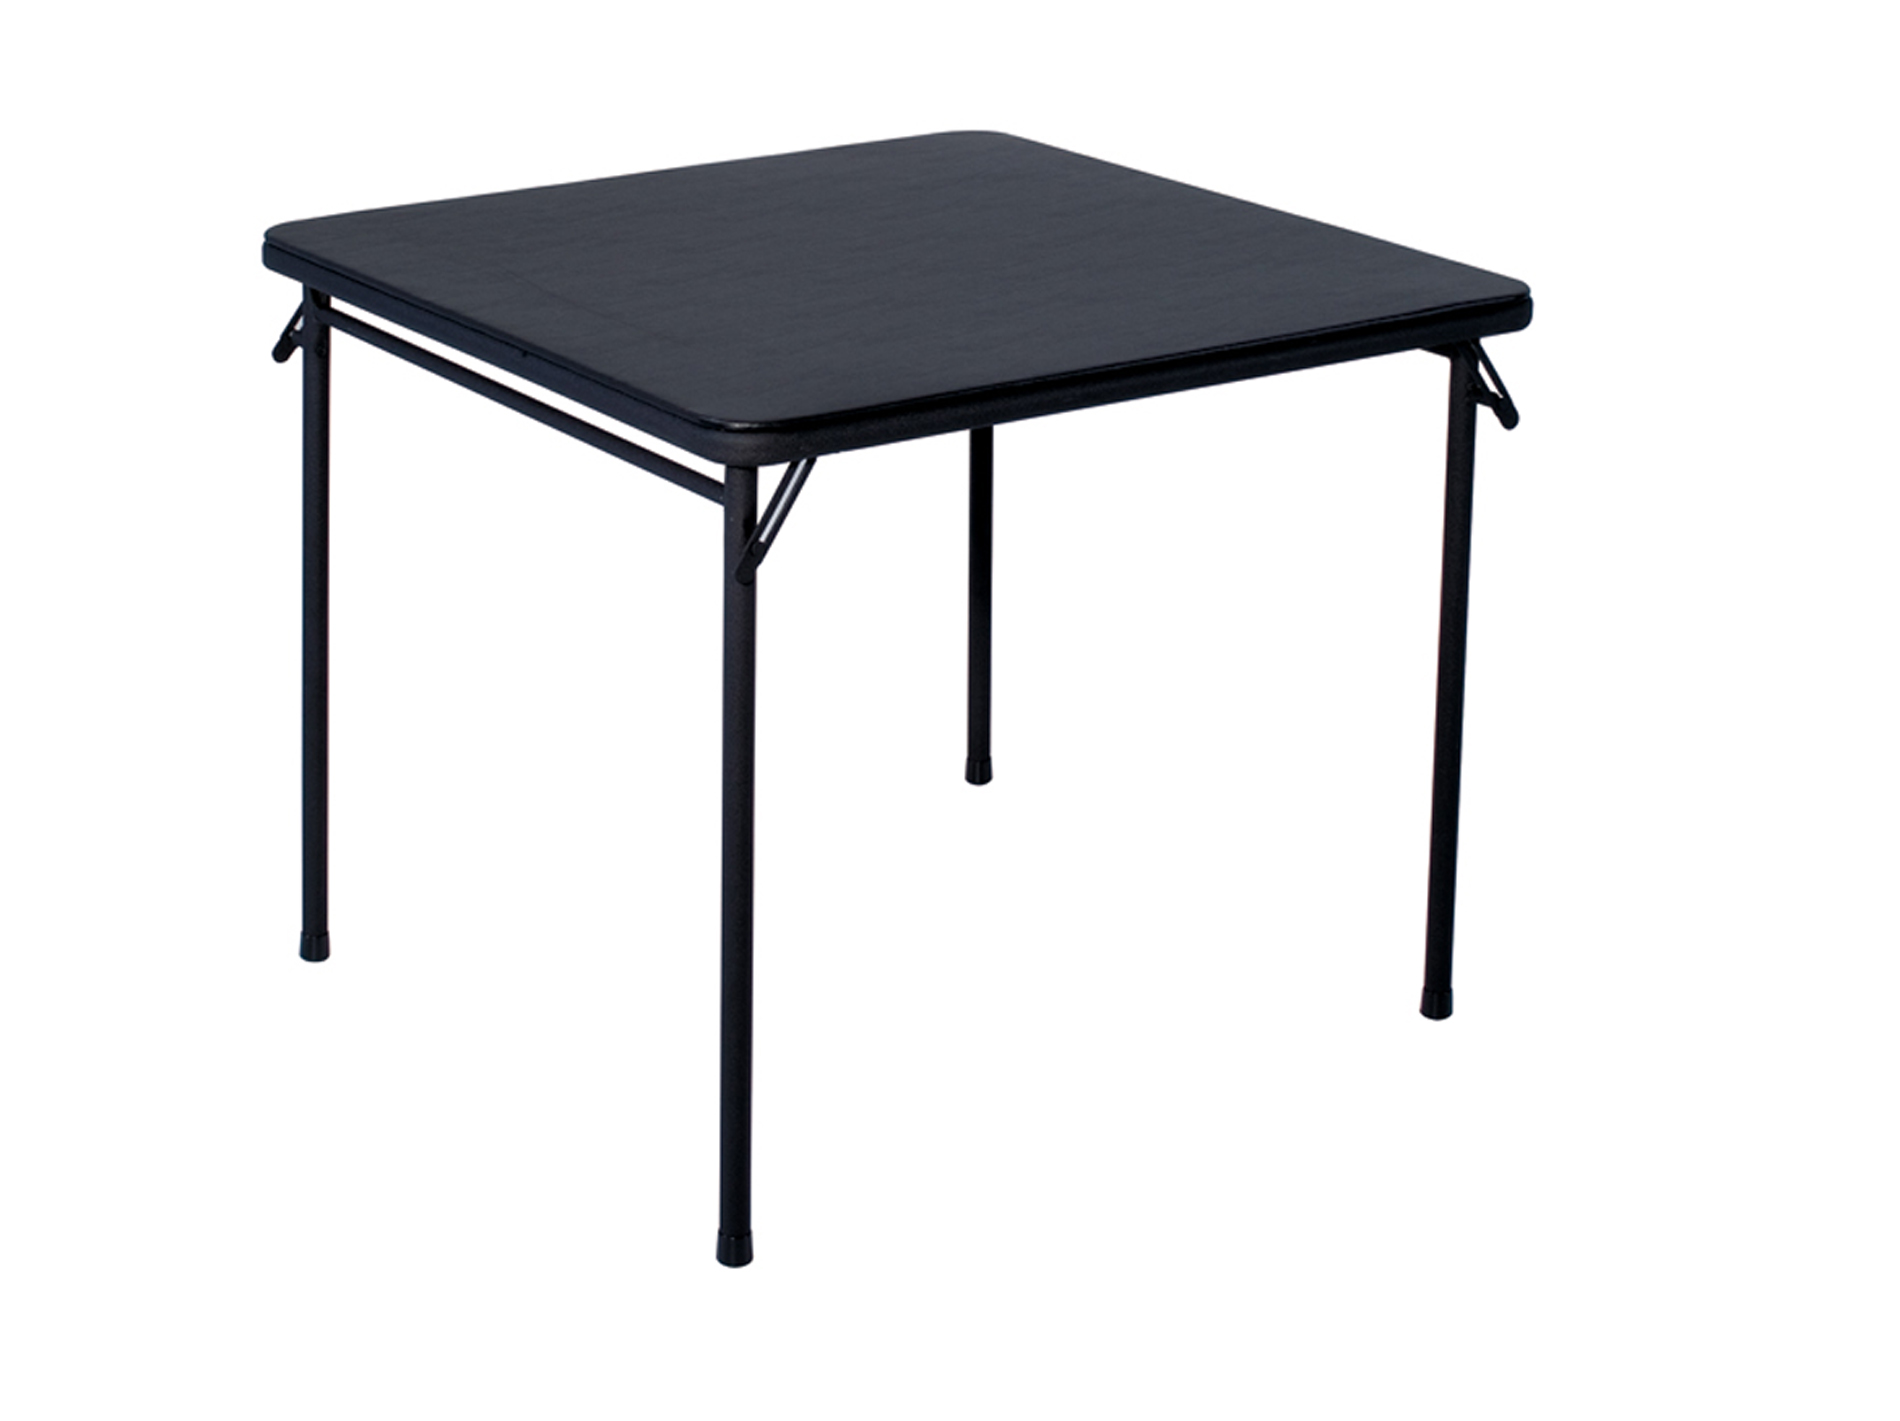 Collection of lightweight folding table cosco home and office products 34 in square folding table tqzjeeb